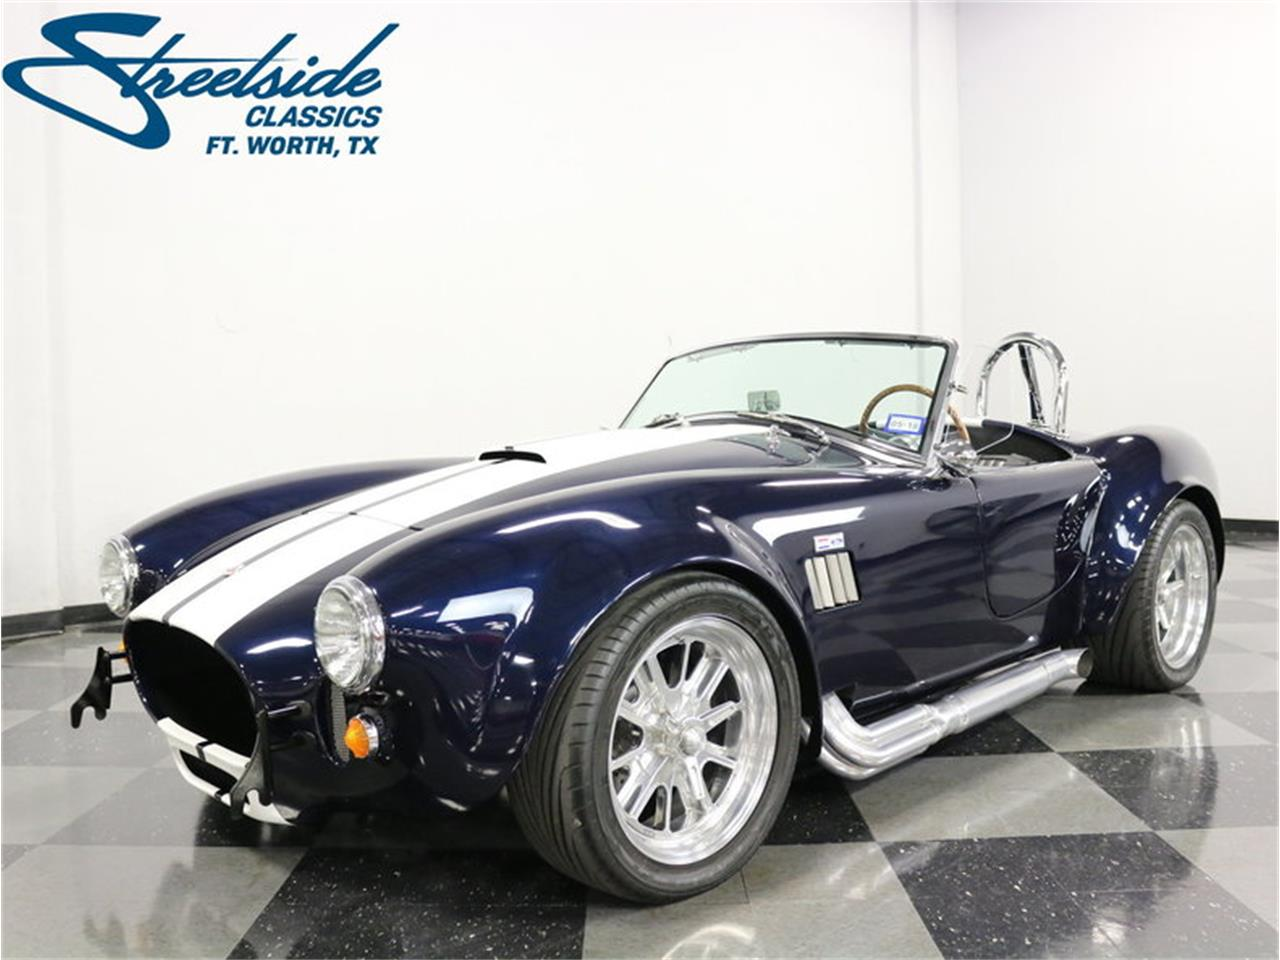 For sale 1967 shelby cobra replica in ft worth texas